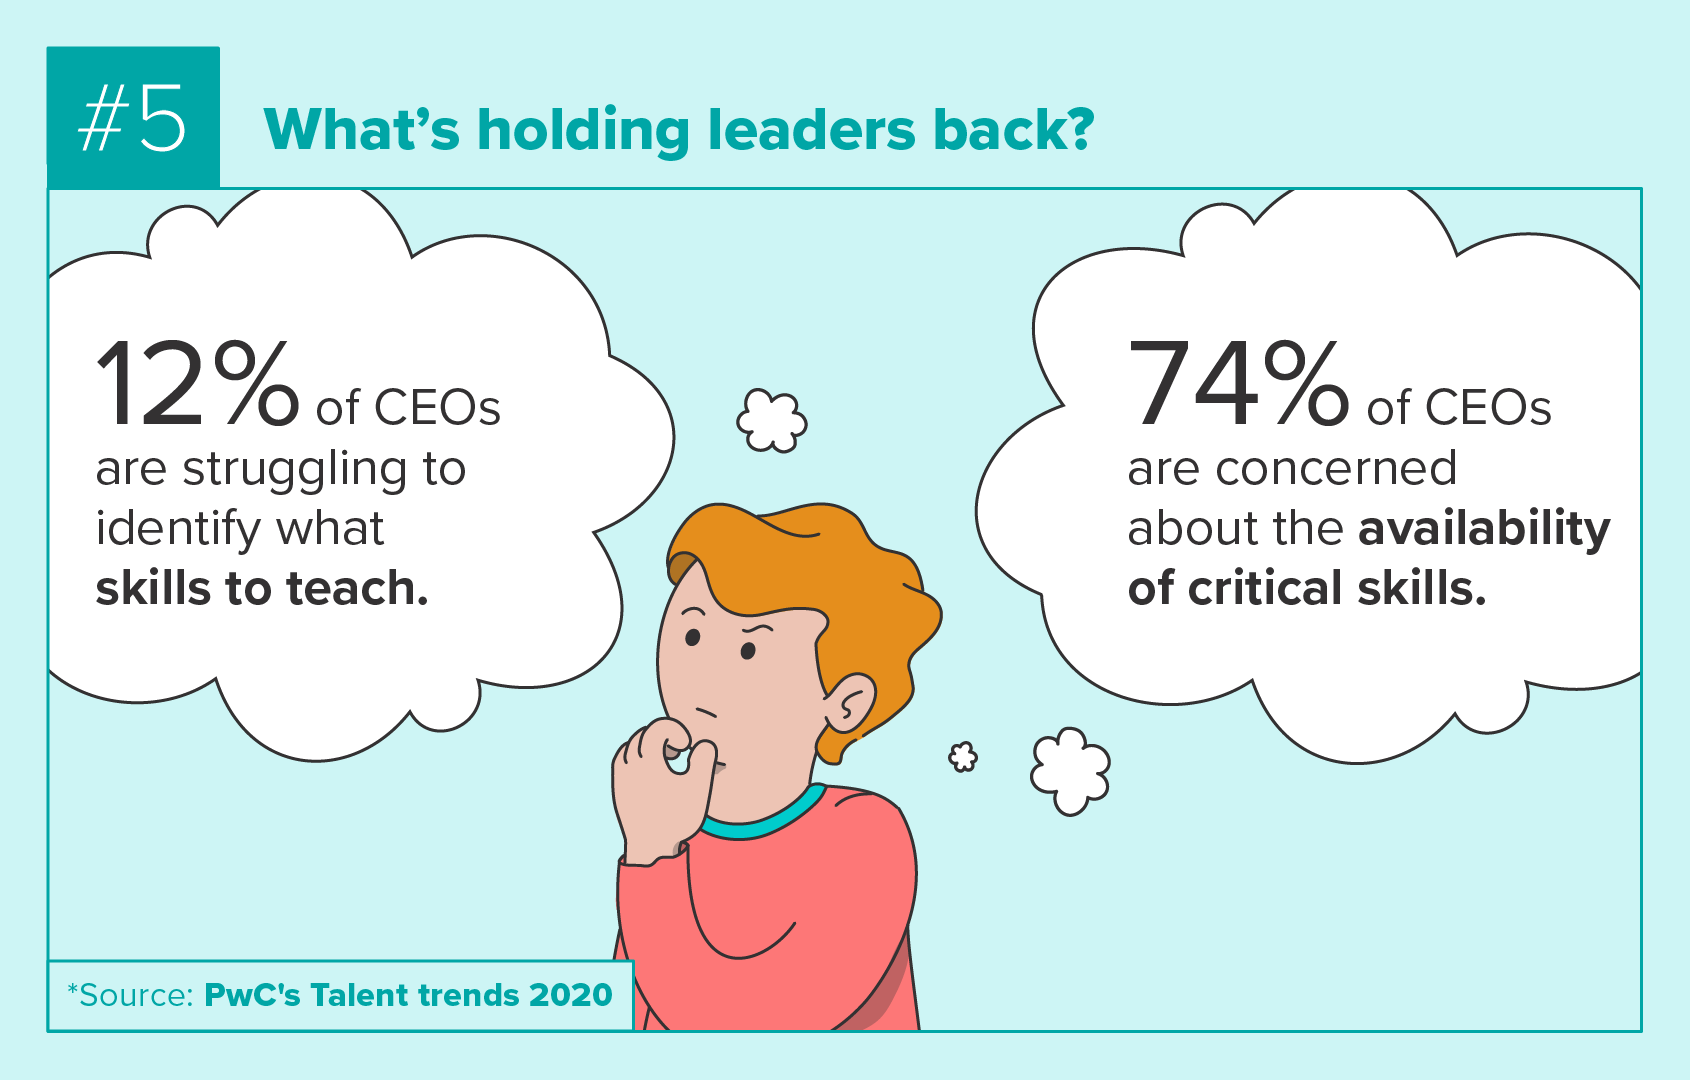 What's holding leaders back?